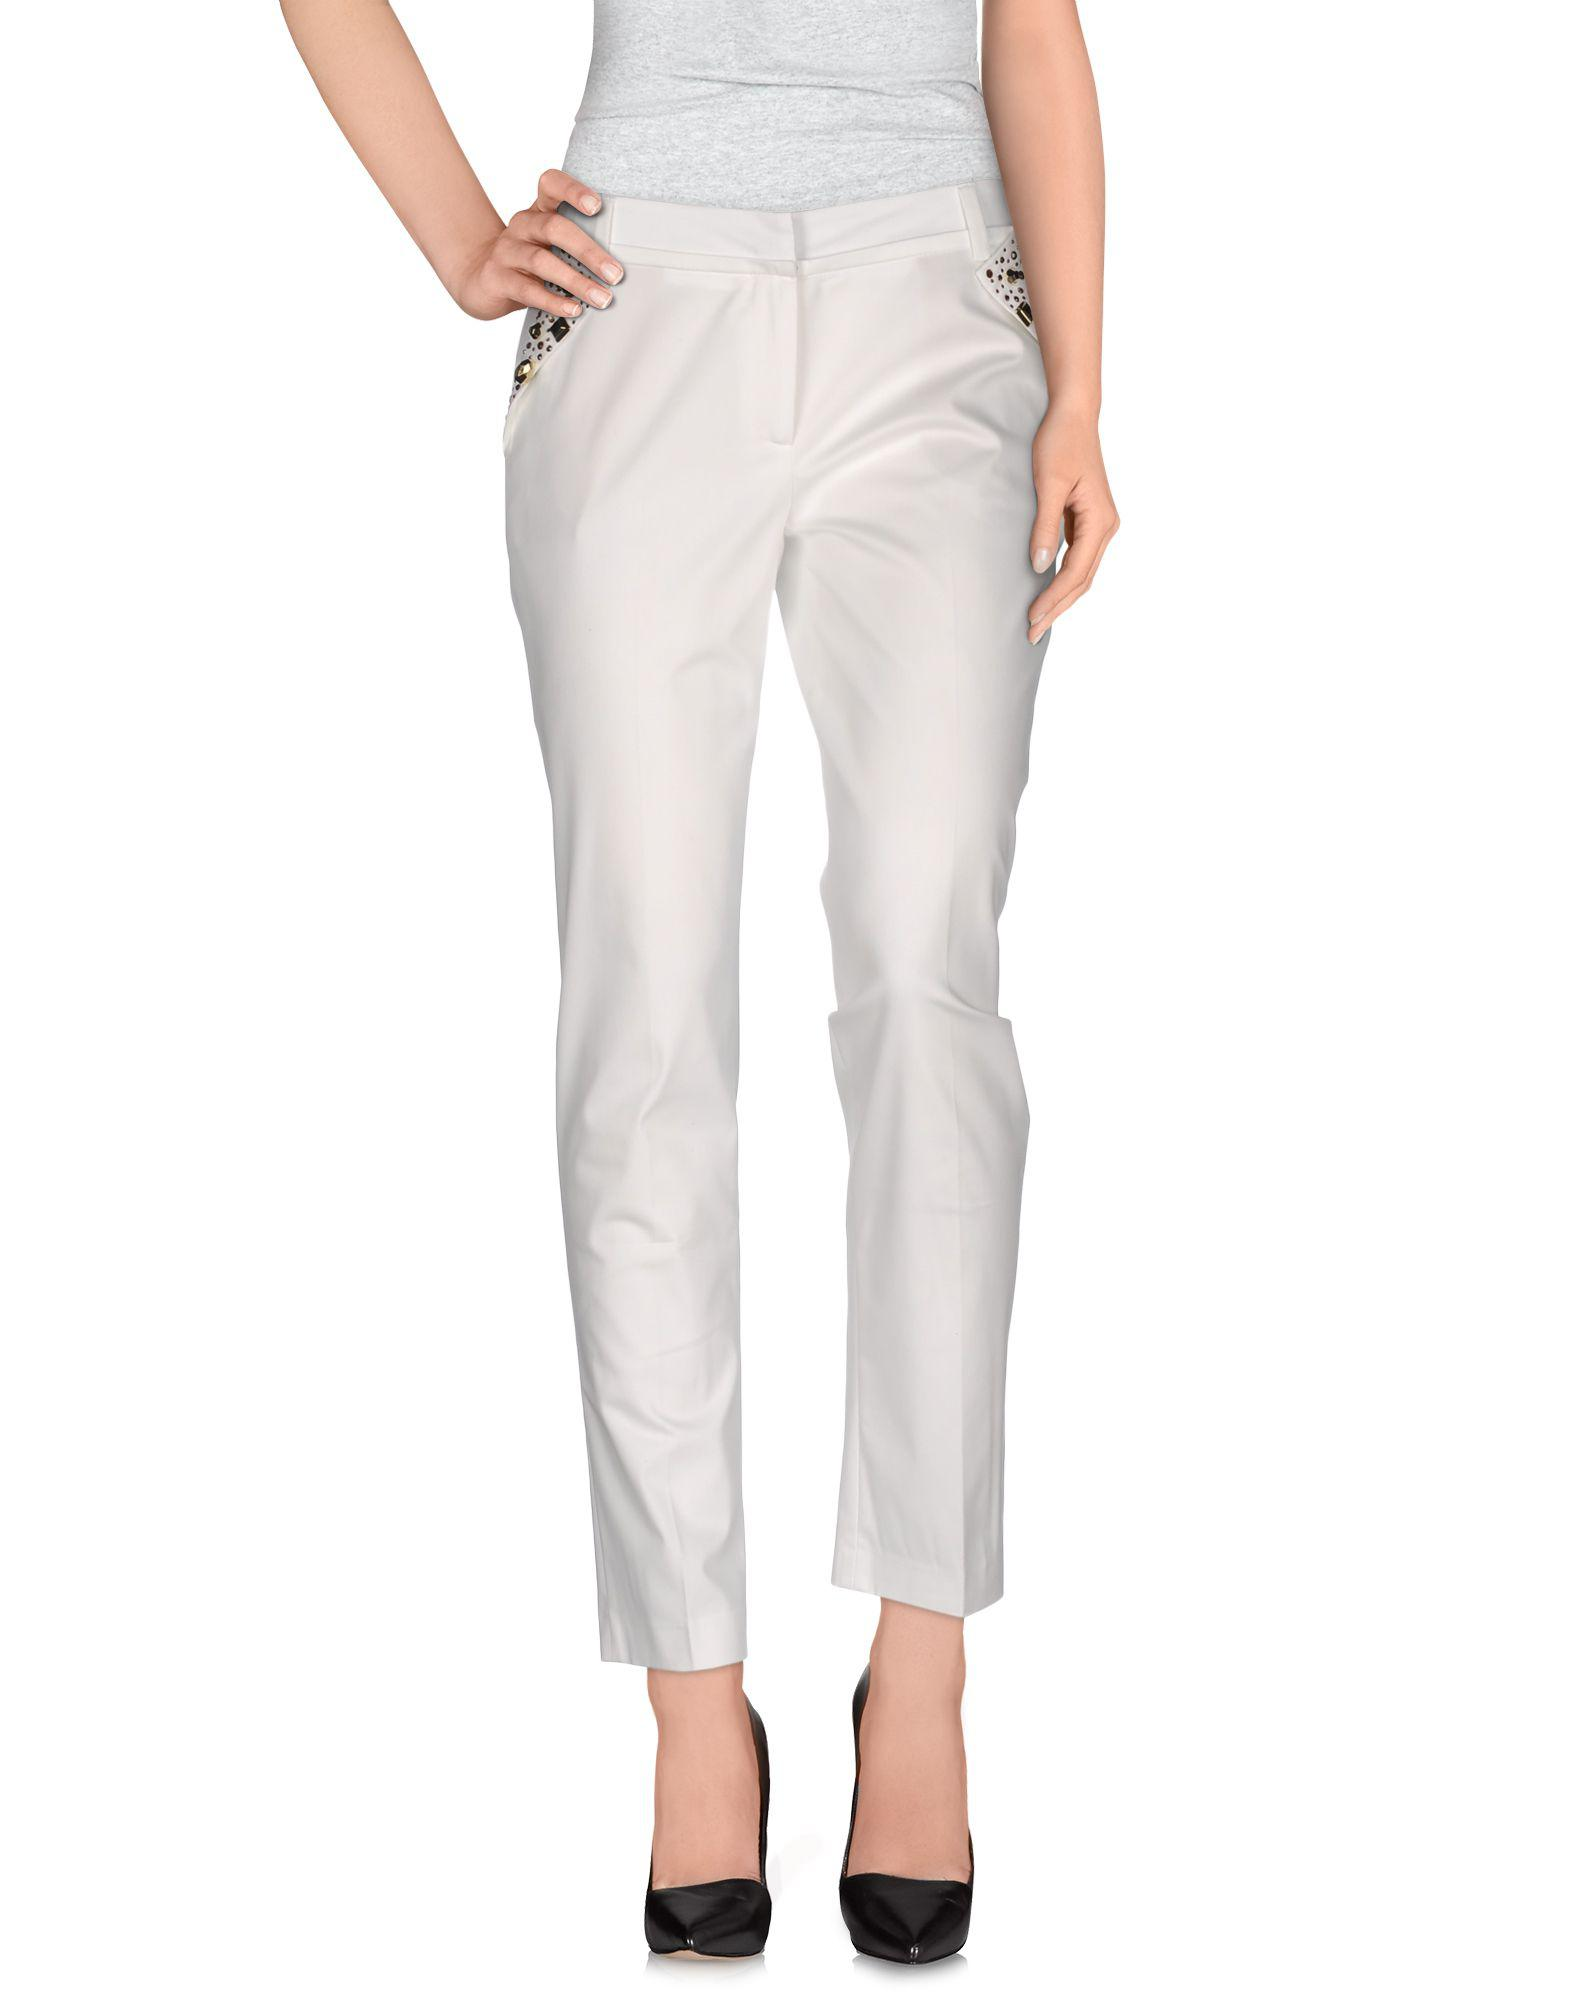 TROUSERS - Casual trousers Anna Rachele Cheap Wide Range Of Comfortable Cheap Online Clearance Sast Clearance Shop For pBXicoeXVC